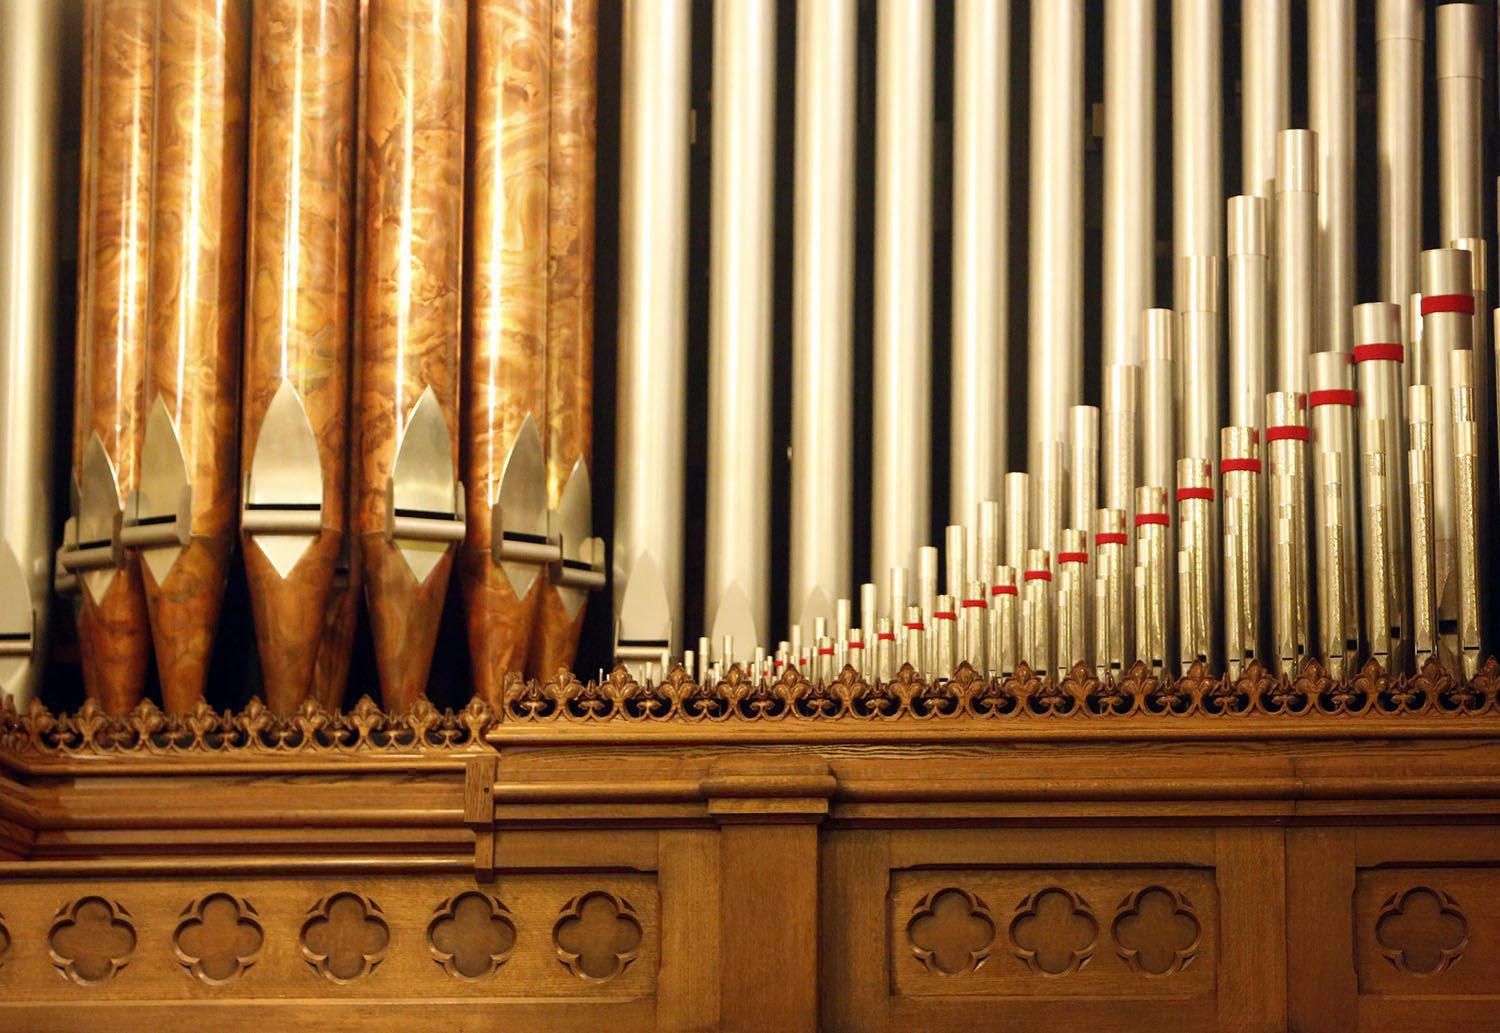 After several months of effort by workers from Cornel Zimmer, of Denver, the refurbished Wicks Organ makes its debut in a free concert at Trinity Episcopal Church in Fort Wayne, Ind. (Chad Ryan/The Journal-Gazette via AP)